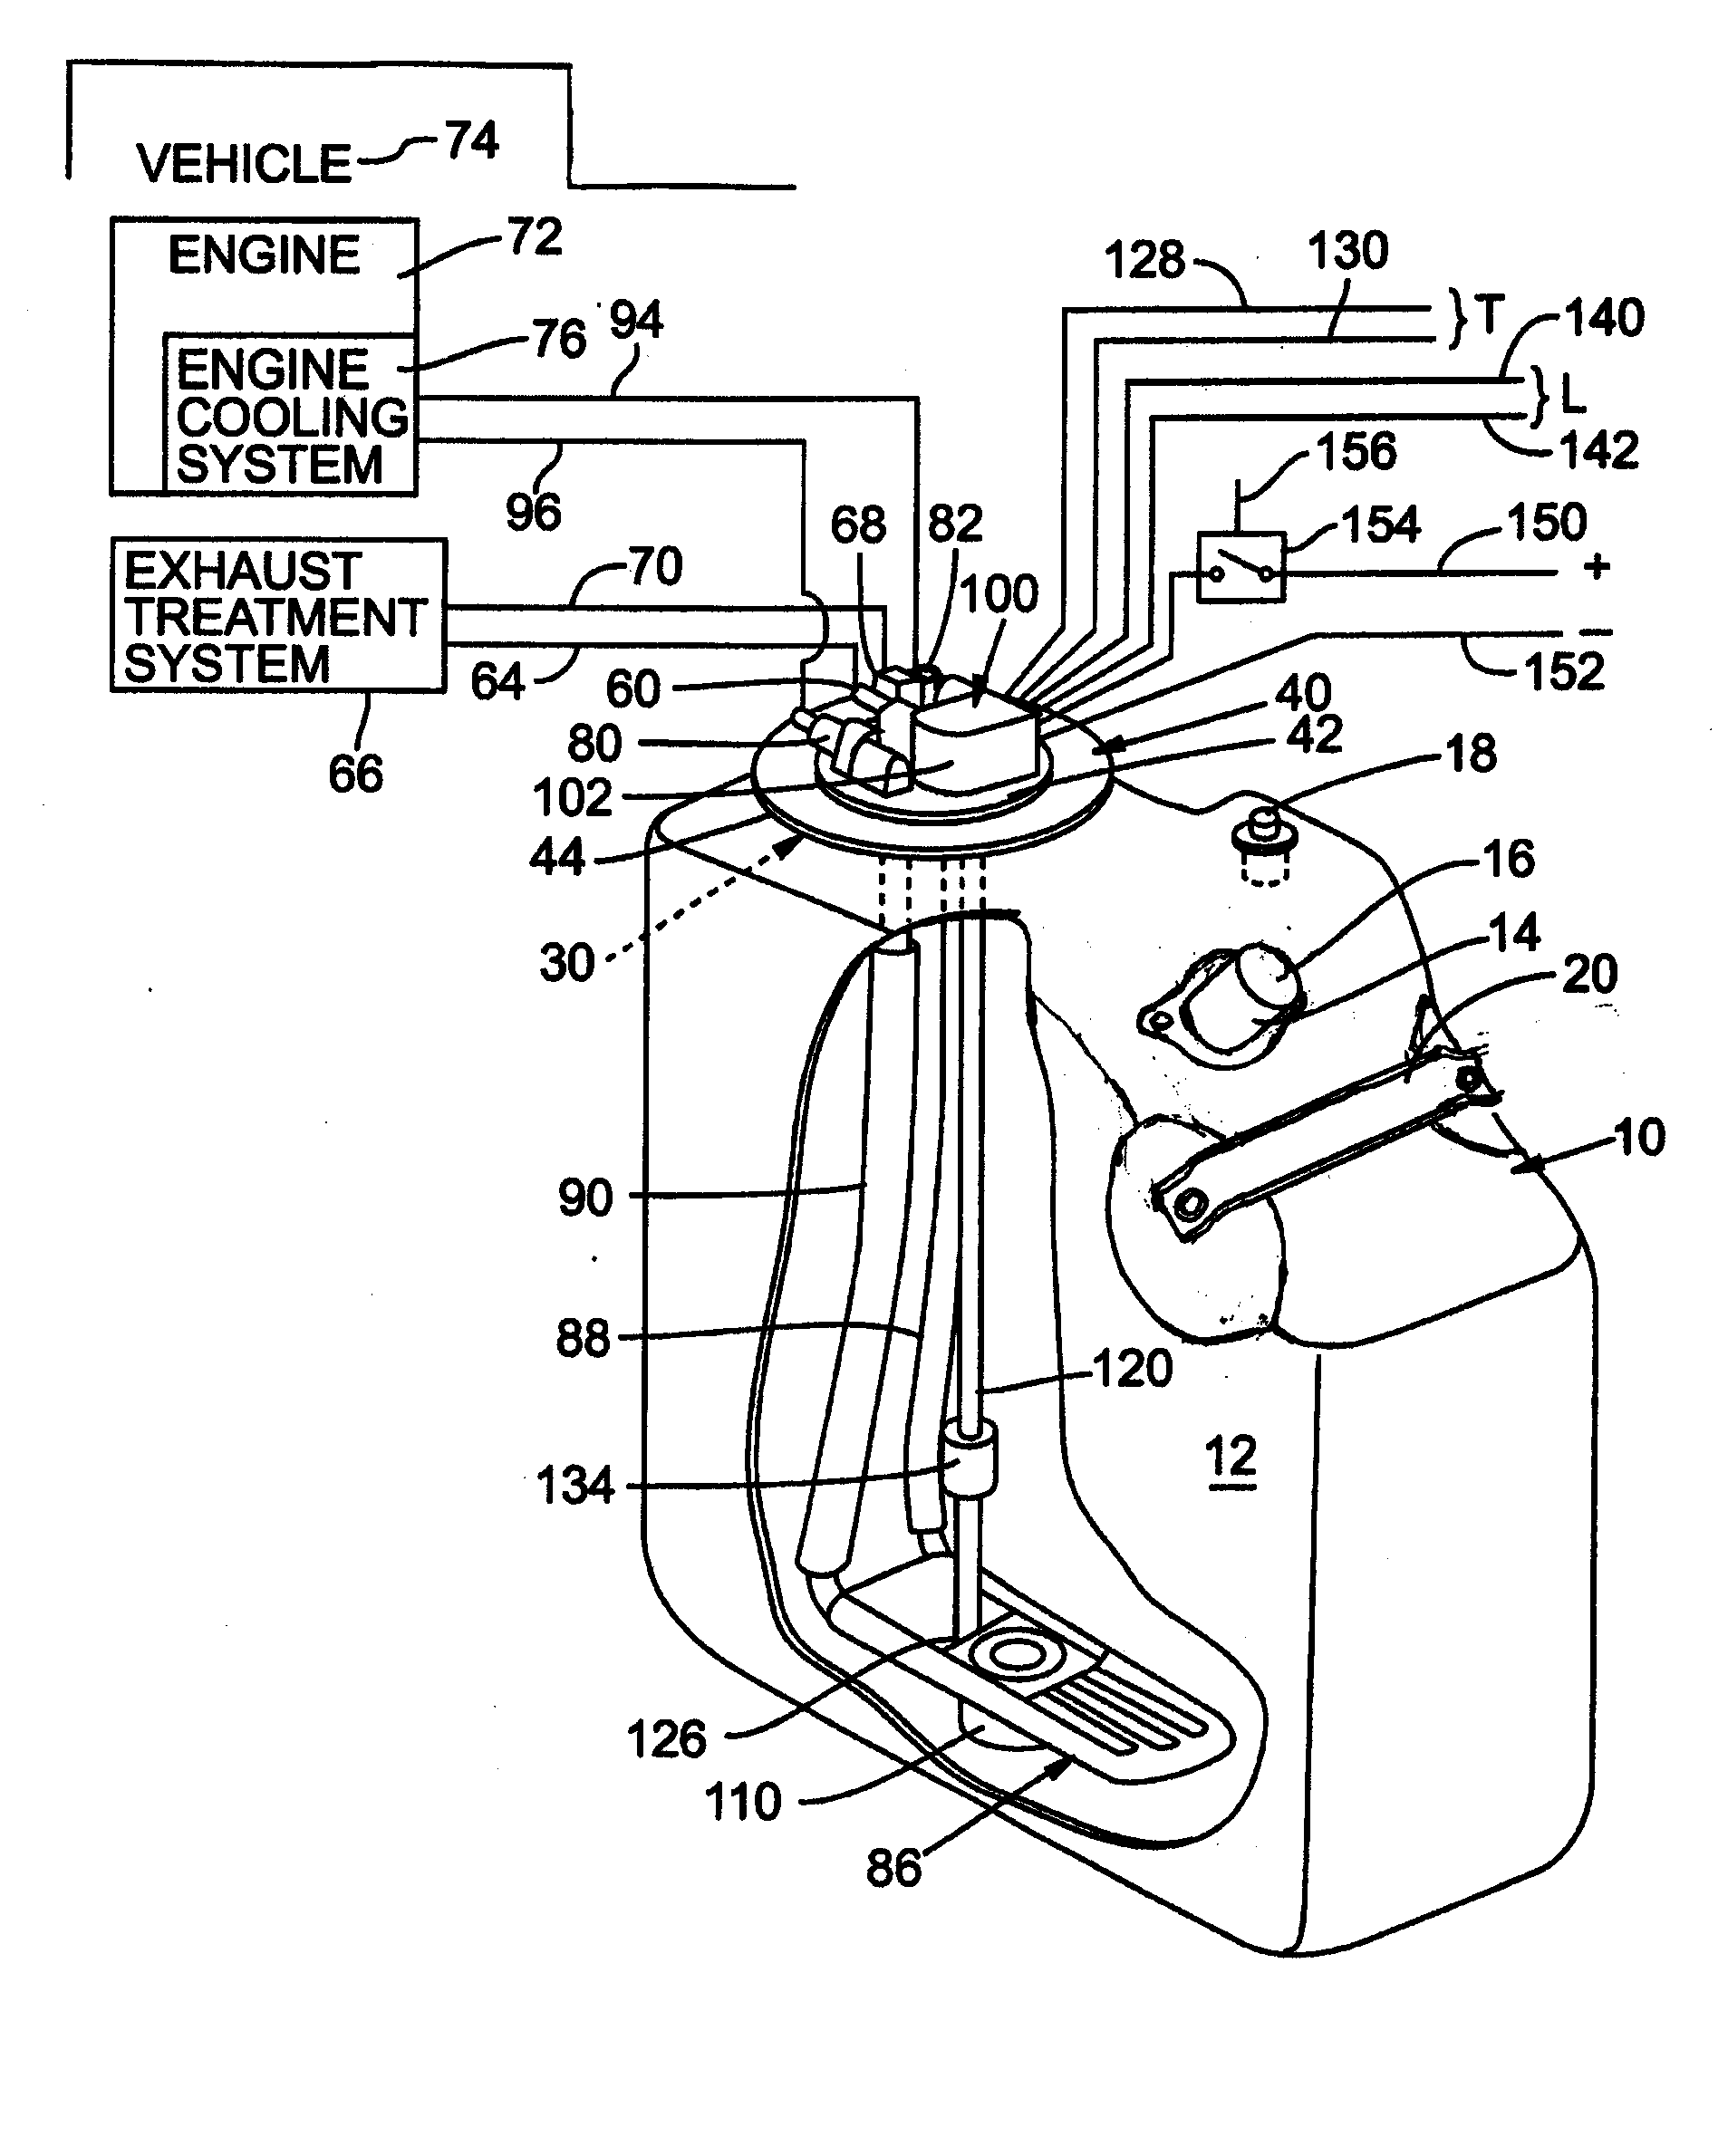 Us20100162690 on wiring diagram electrical system